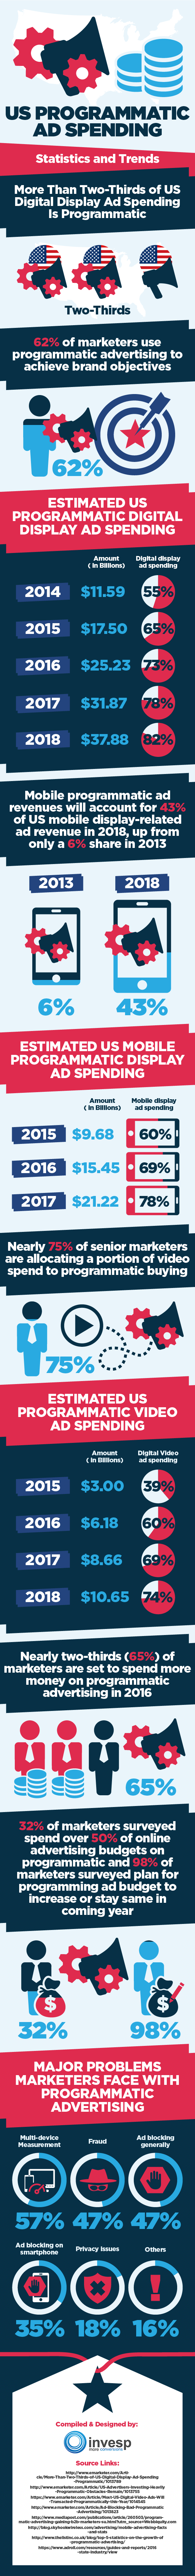 What is the Future of Programmatic Advertising in the US? [Infographic] - US programmatic ad spending